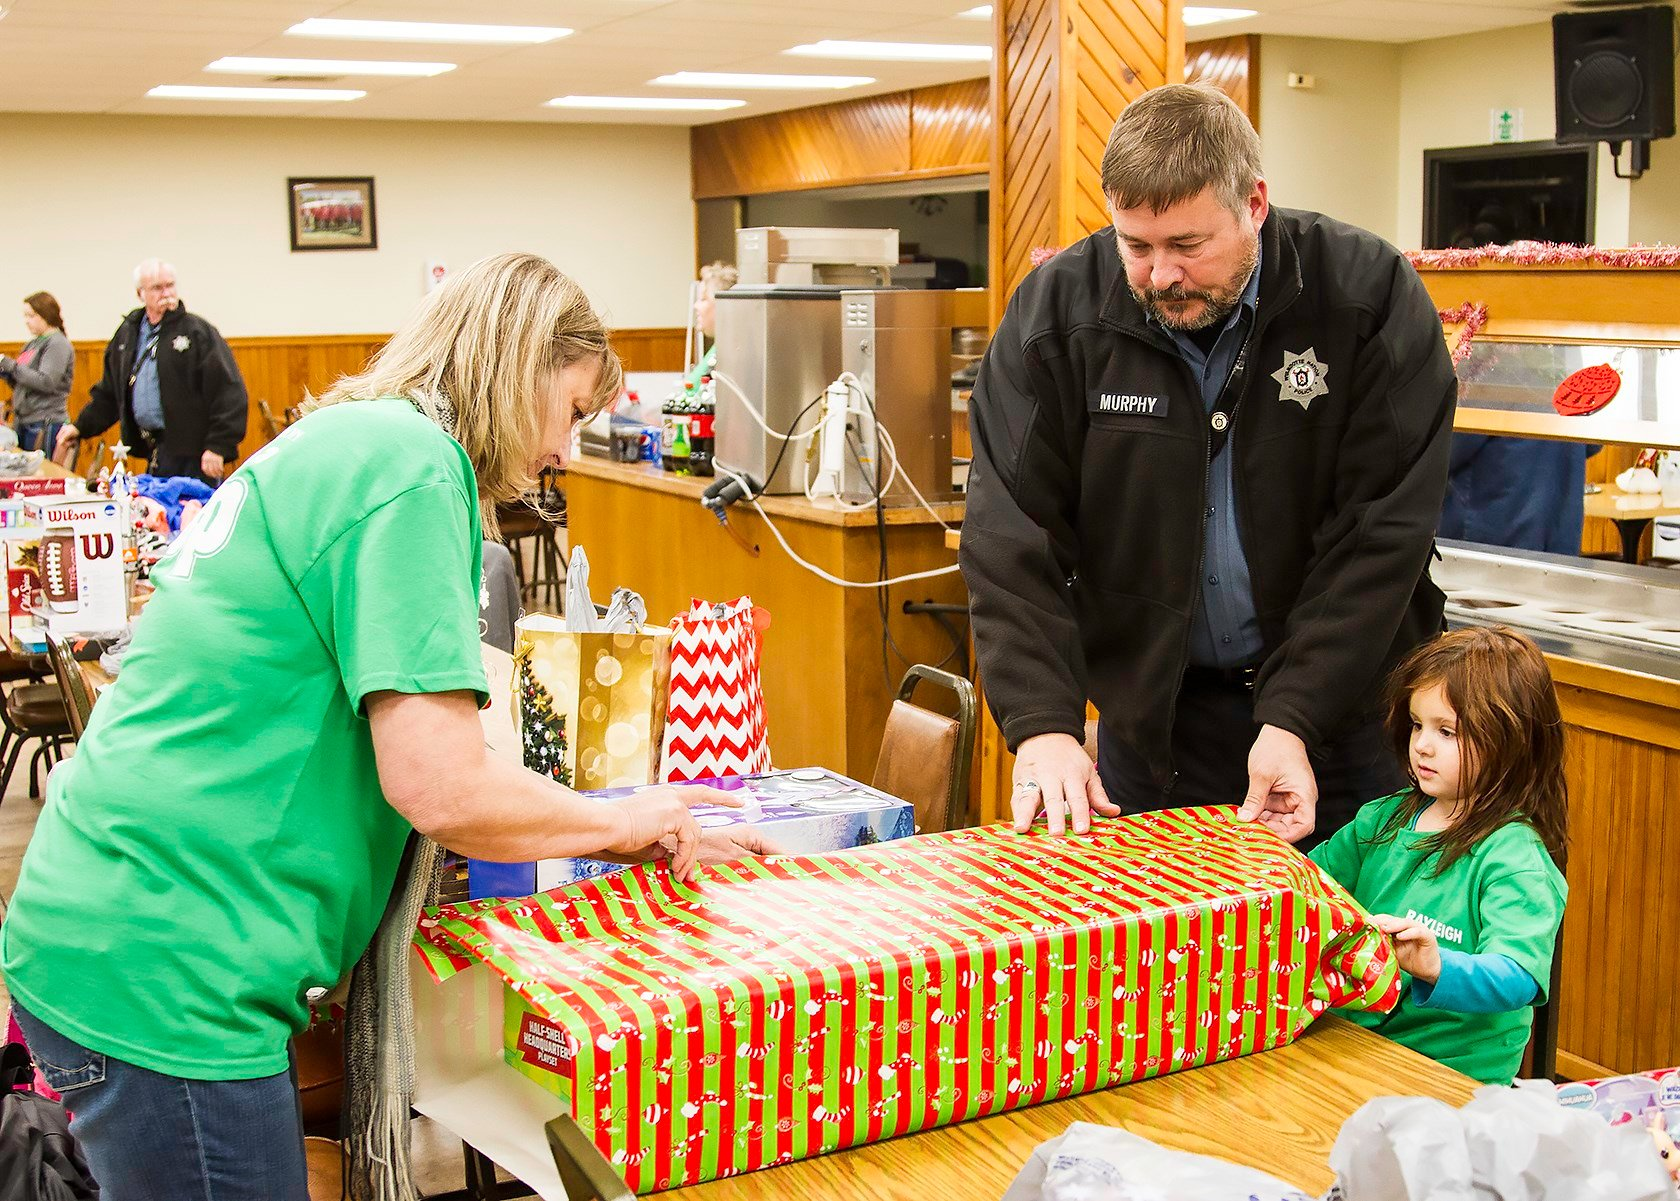 Janette Arnold, Police Chief Ken Murphy, and Rayleigh Barfell wrap presents.